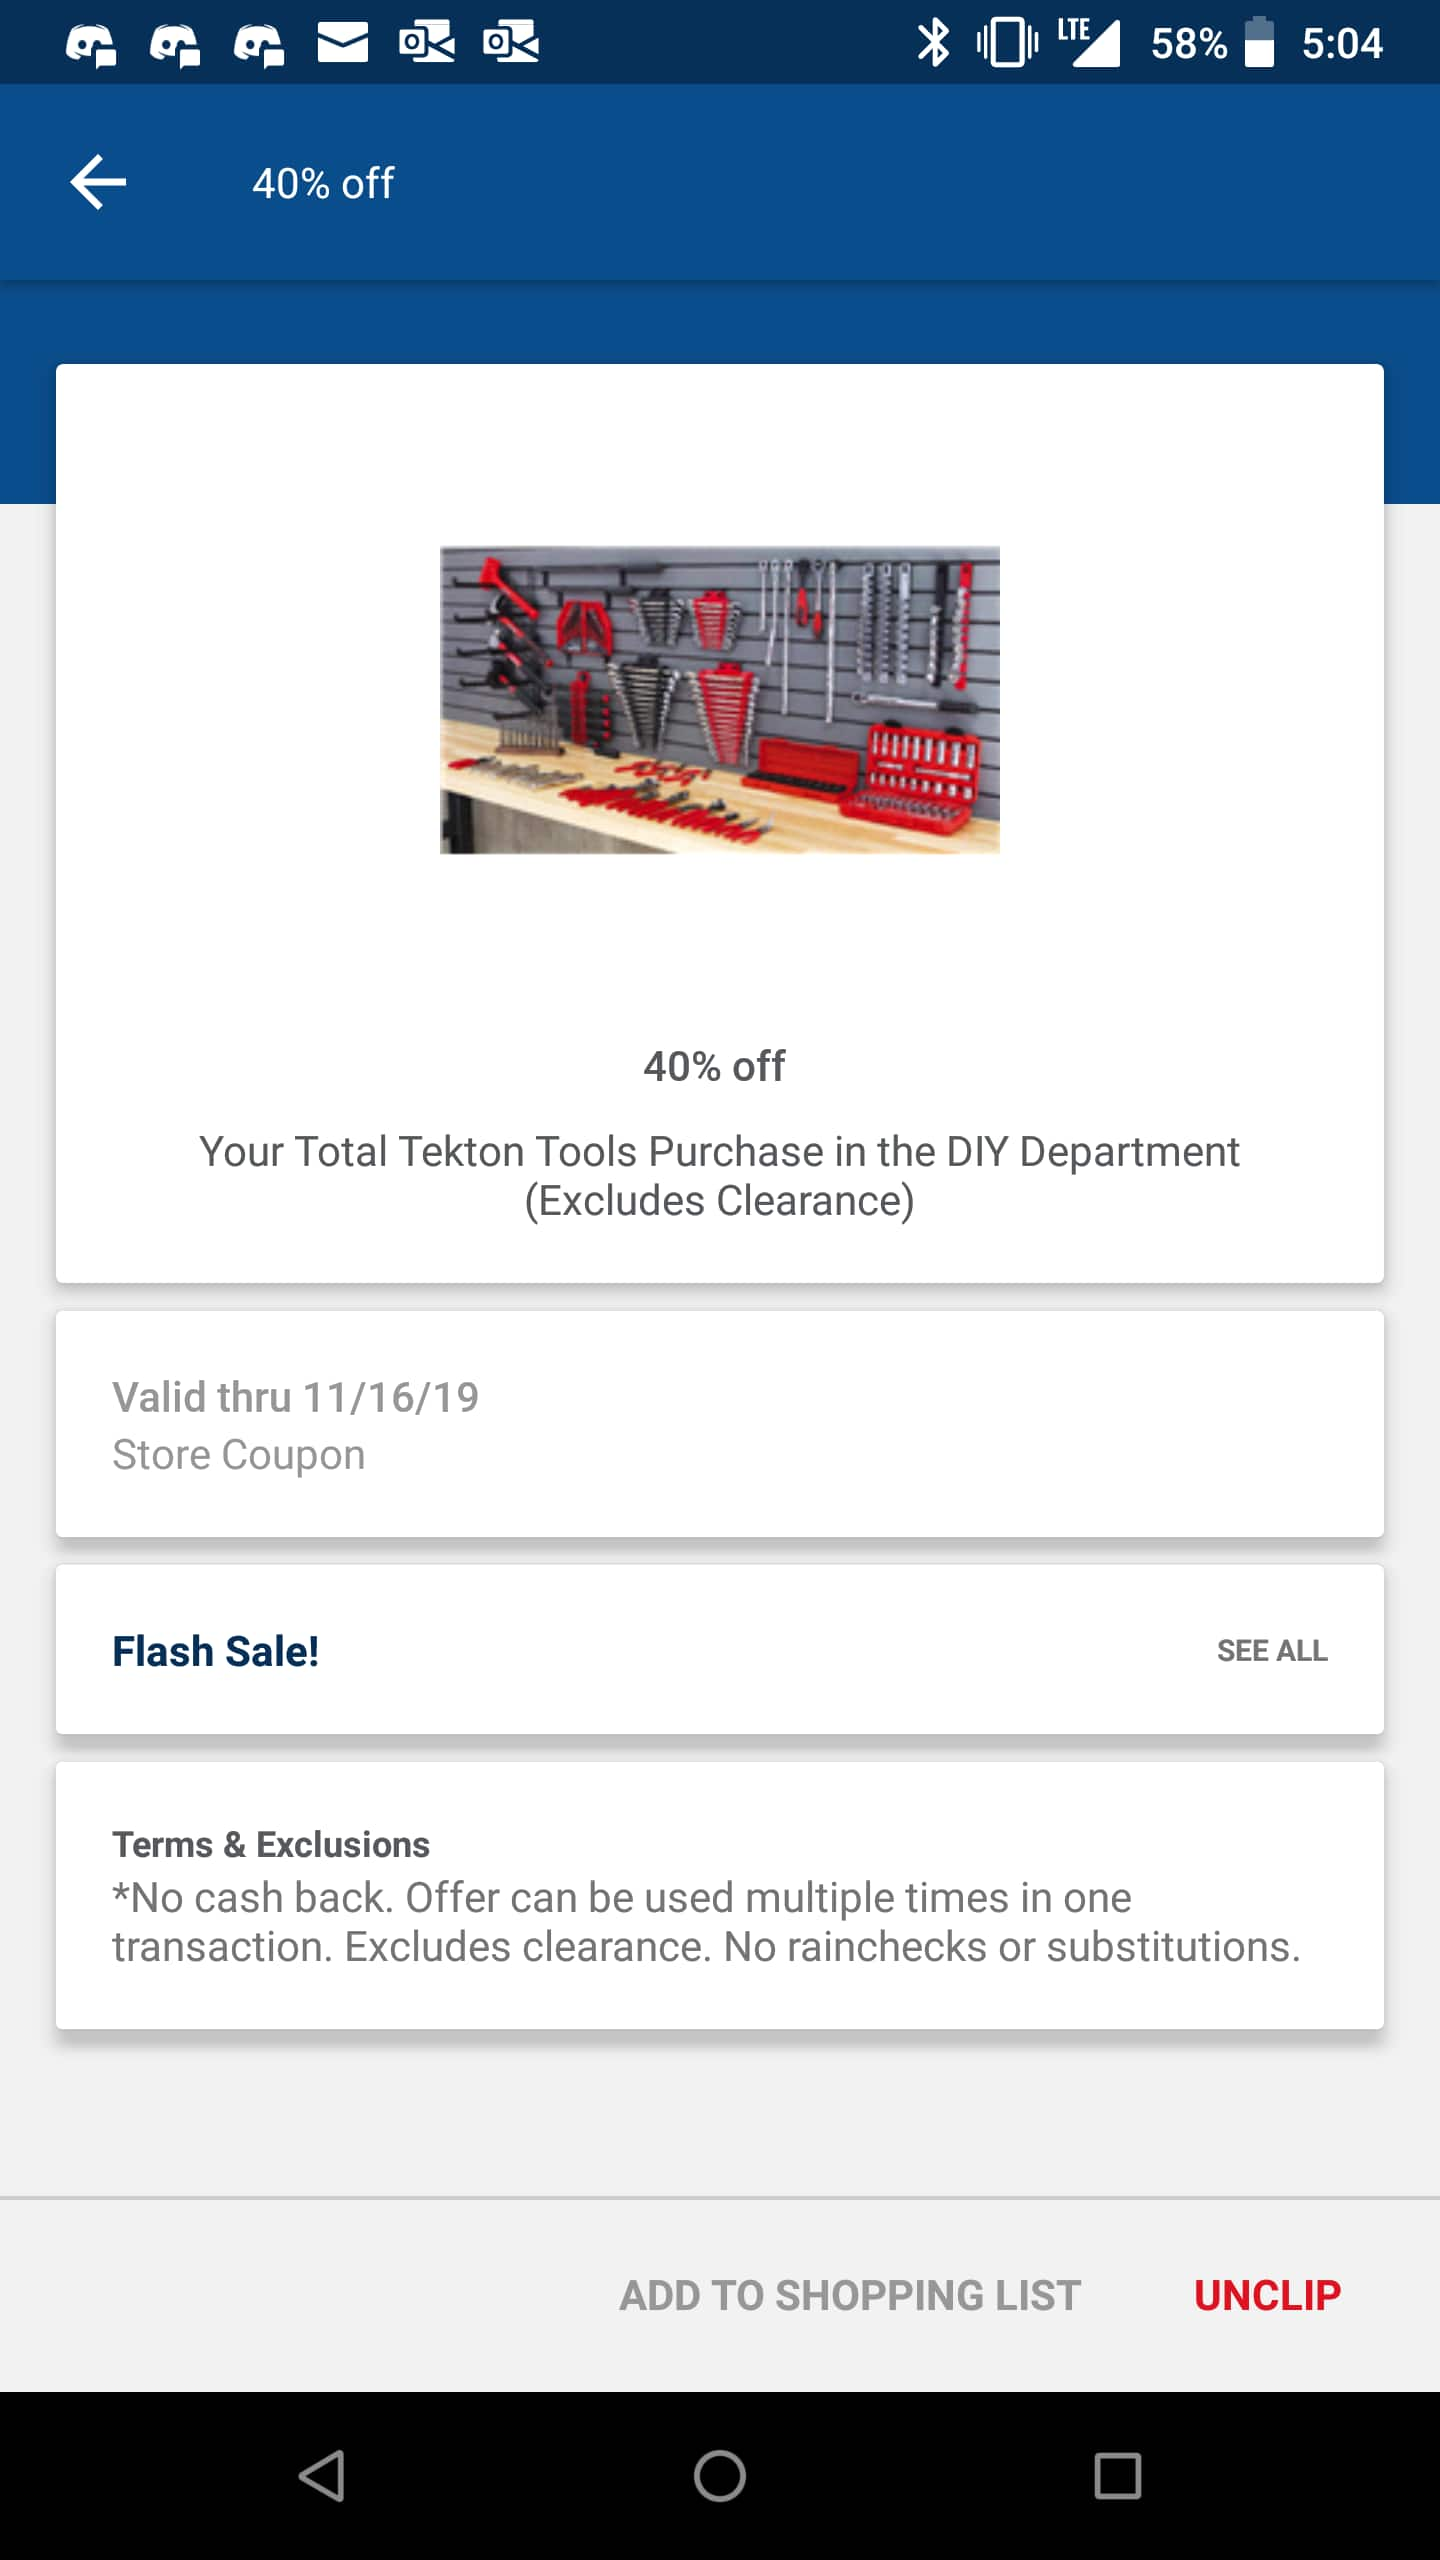 40% off Tekton tools at Meijer stores using MPerks flash coupon (expires 11/16/19)